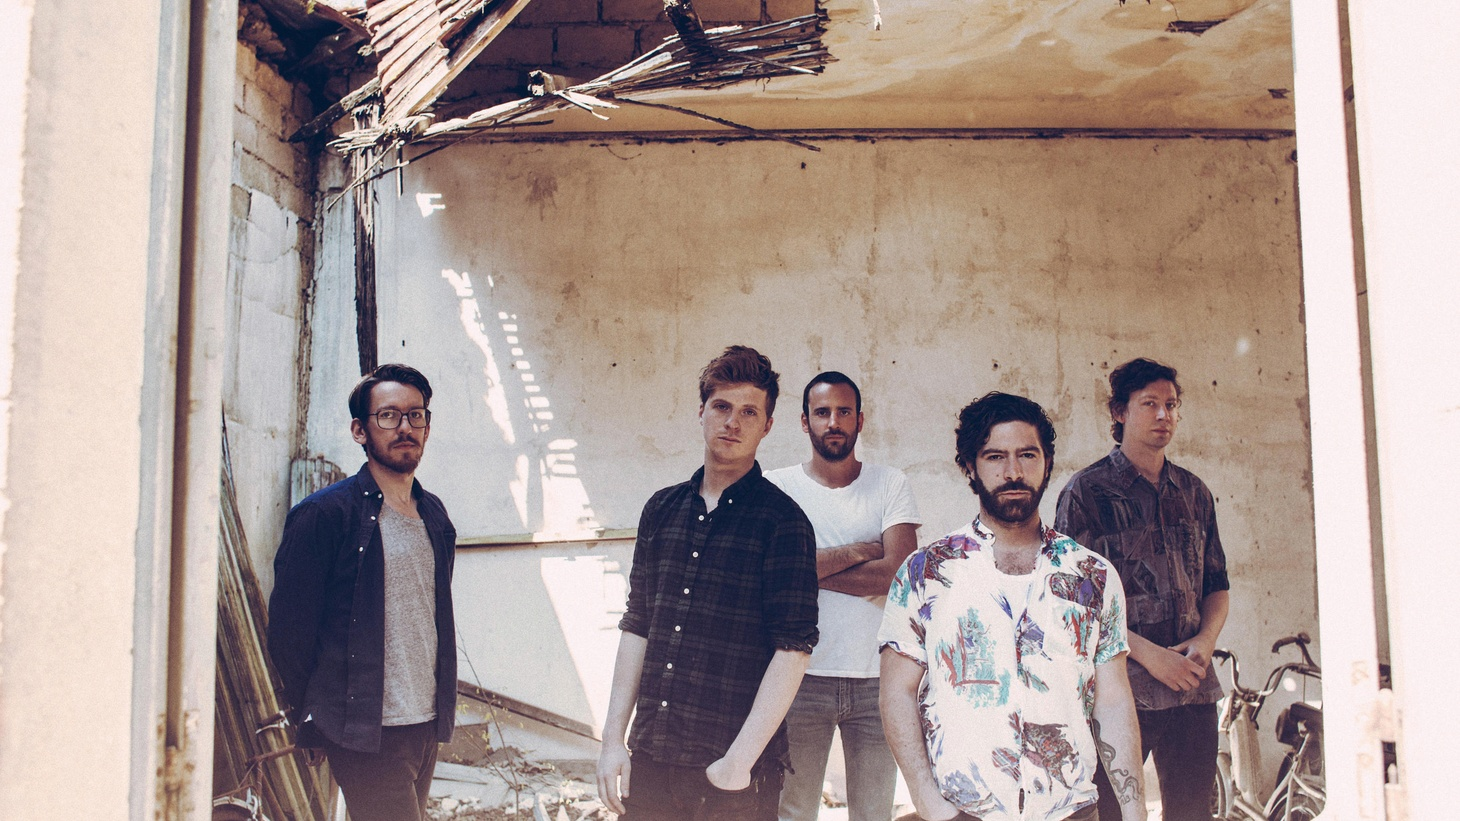 Oxford, UK-based band Foals are gearing up to release their fourth album later this month.